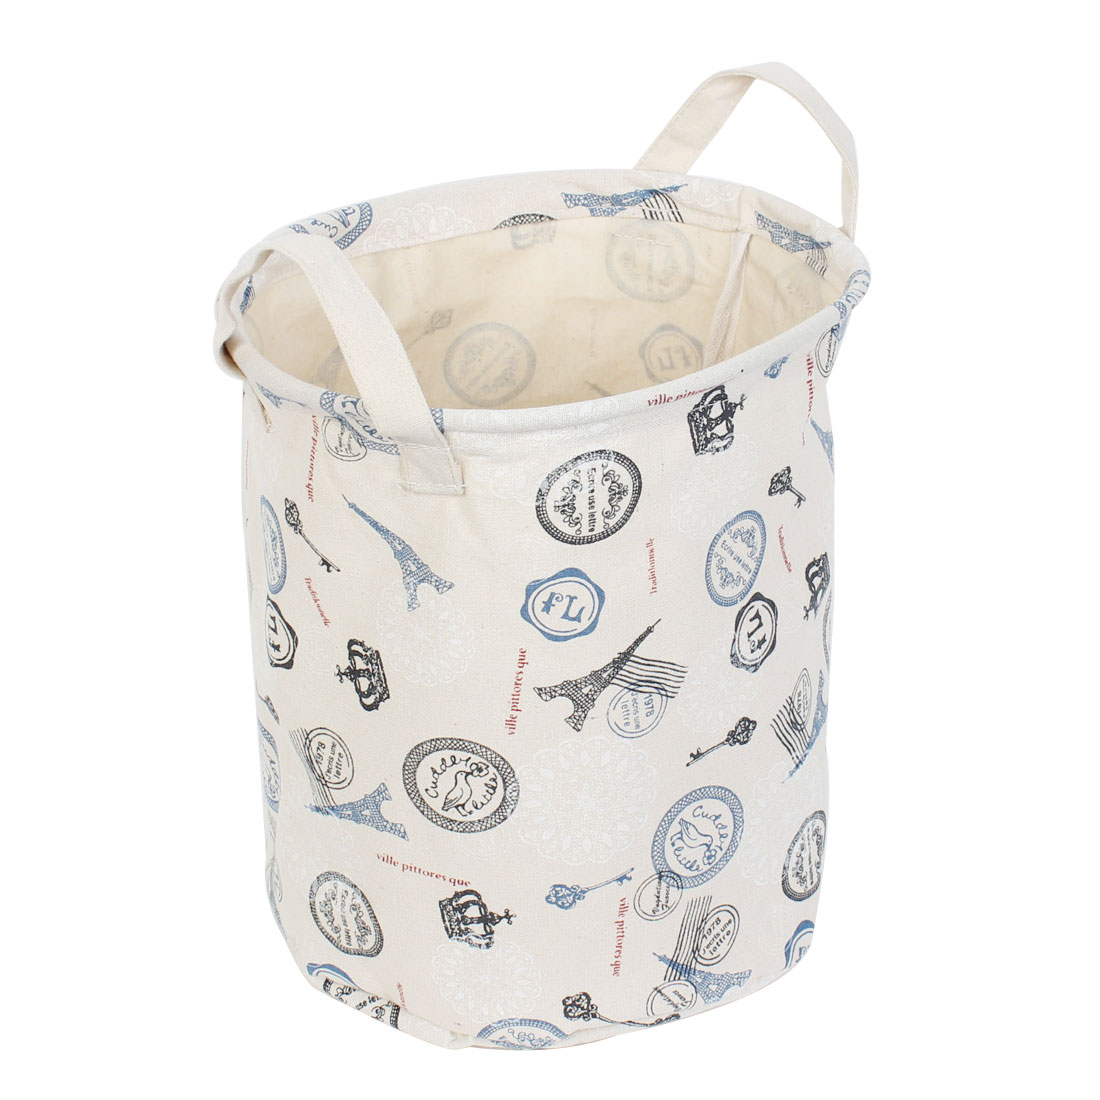 Tower Printed Cylinder Shaped Storage Basket Bucket